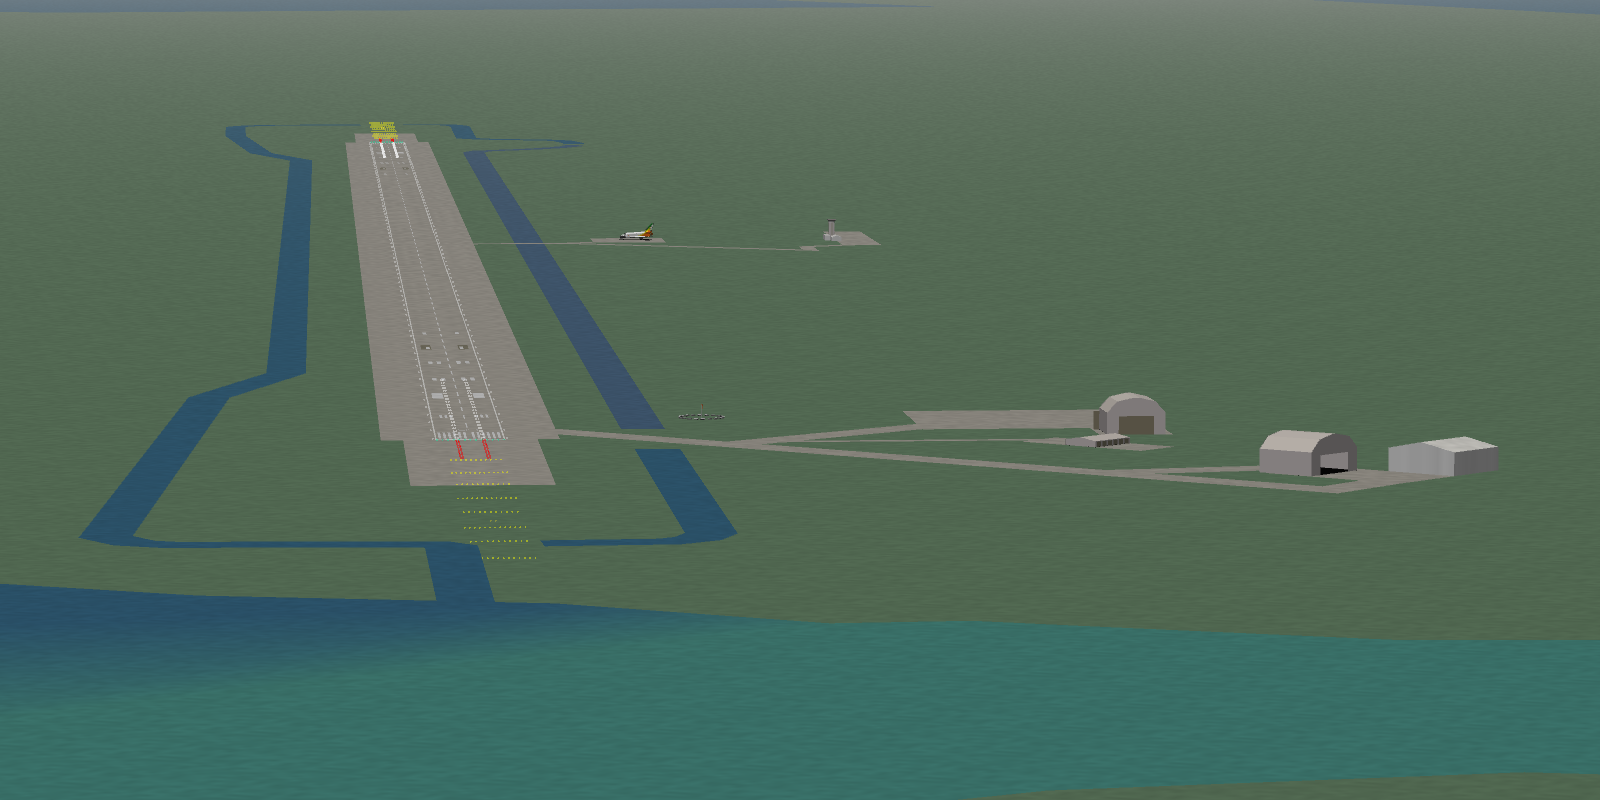 NASA Shuttle Landing Facility KTTS.png